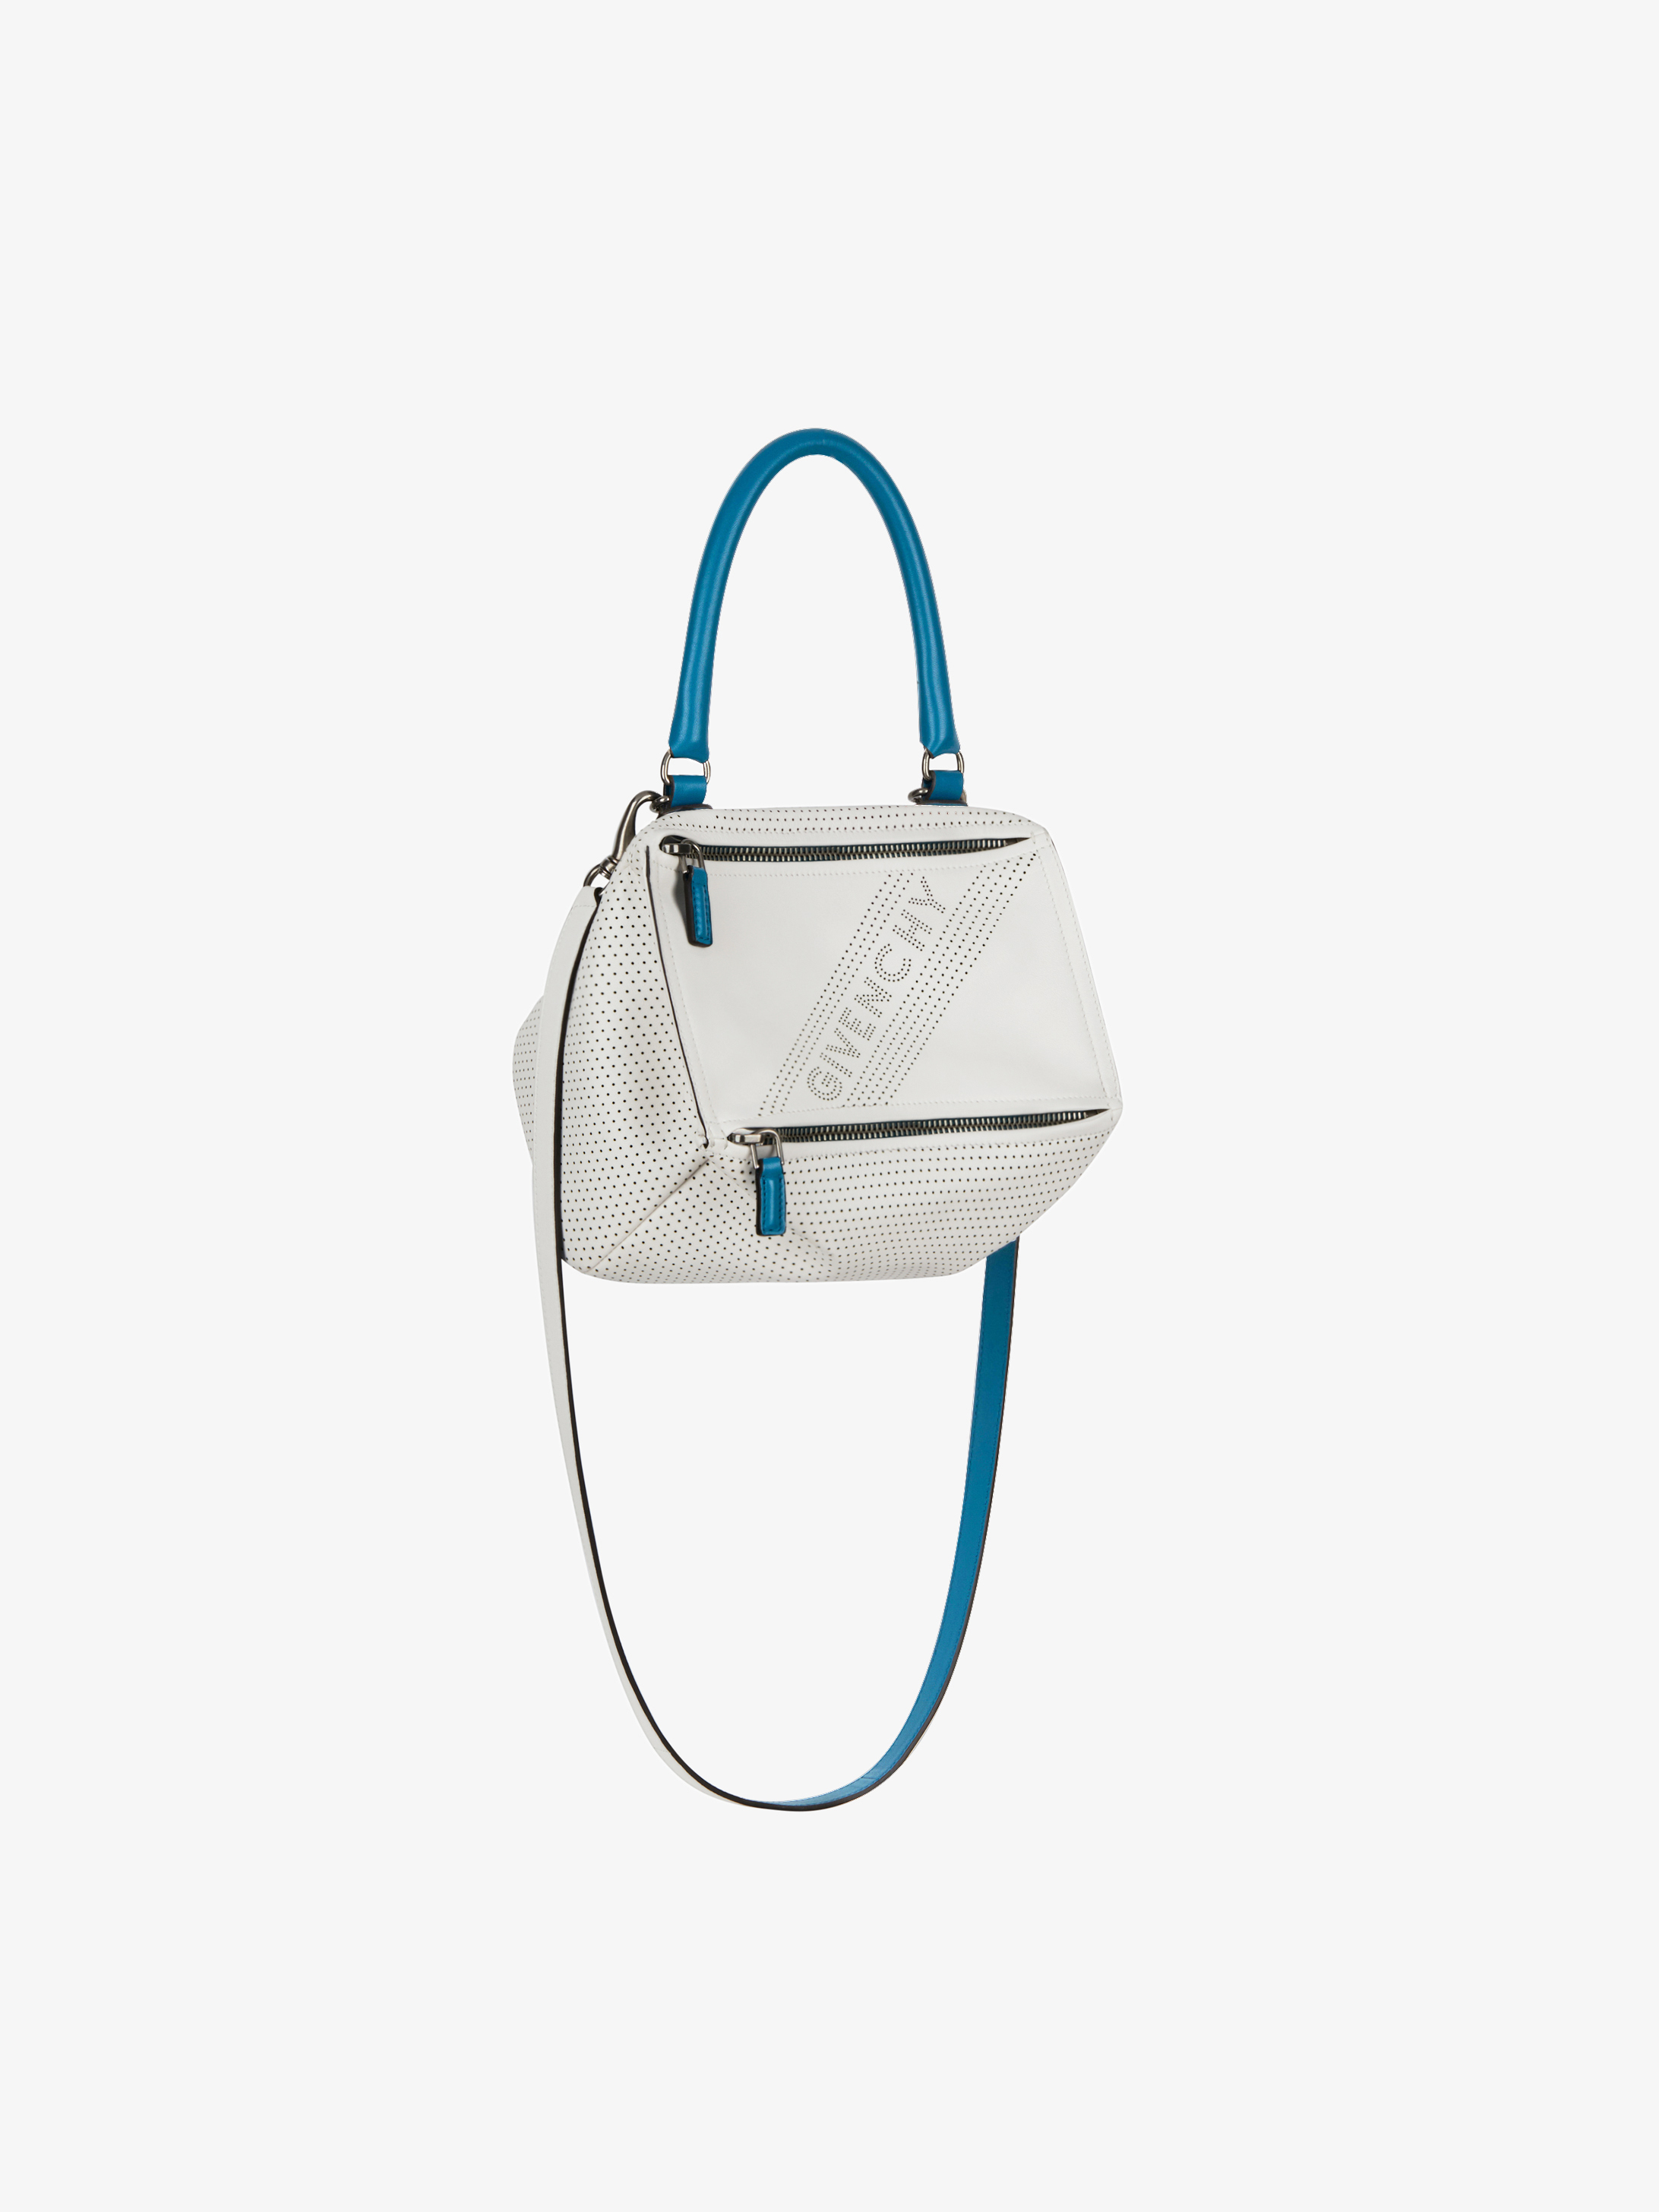 GIVENCHY perforated small Pandora bag in leather  dcd60f11c3ad2